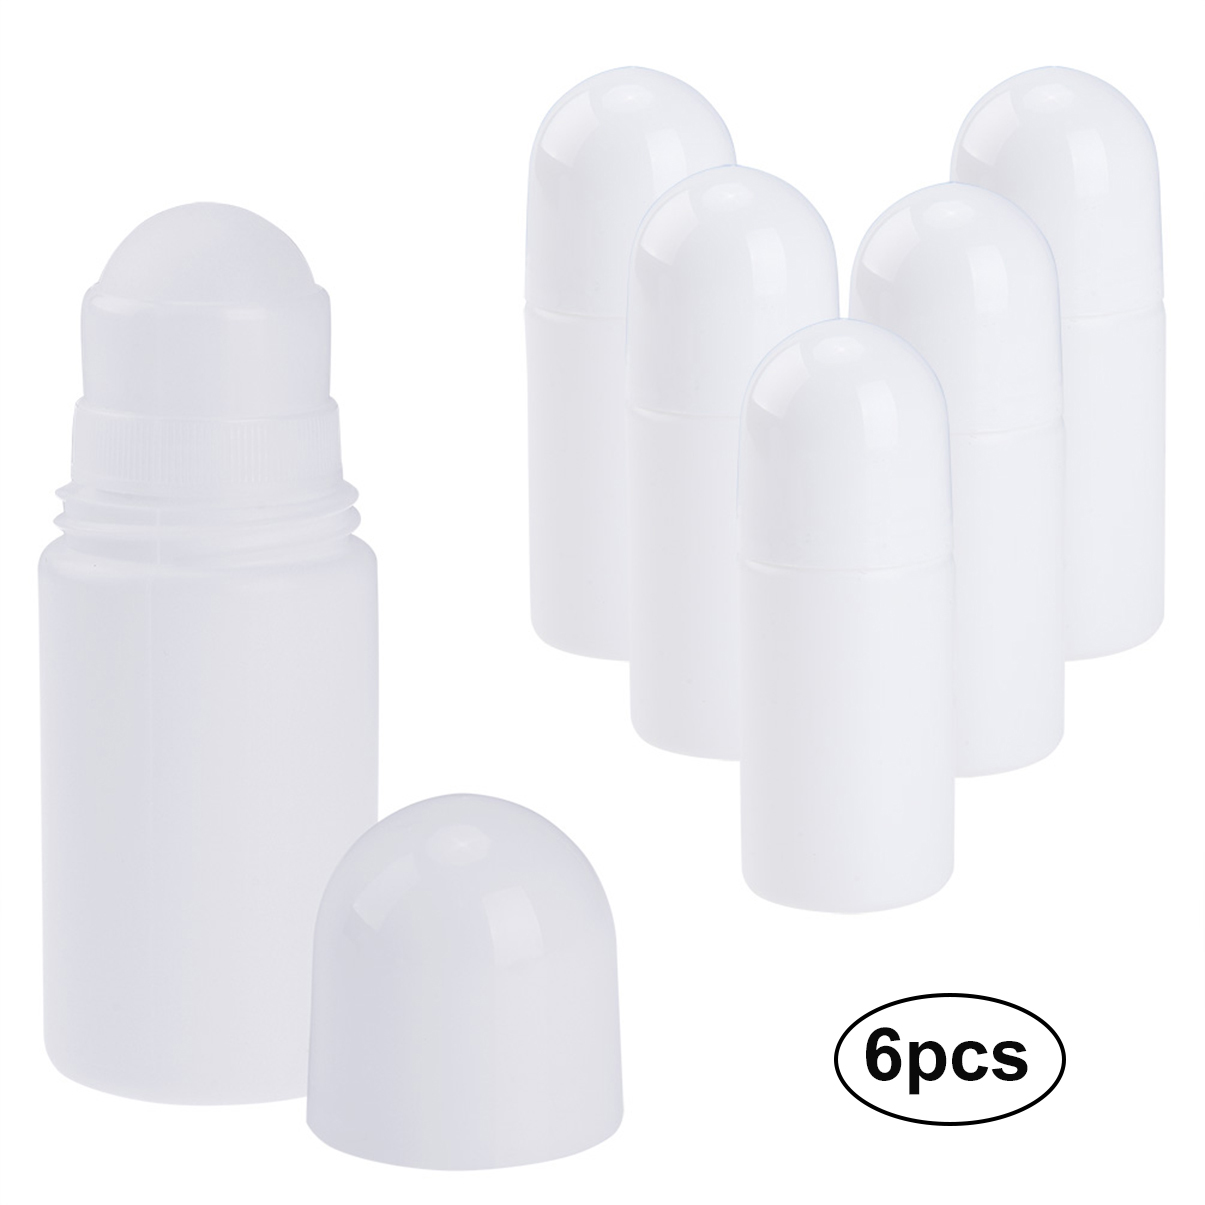 PrettySee 6PCS Empty Roll on Bottle 50ML Recyclable Antiperspirant Roller Bottles Refillable Deodorant Container with RollerBall